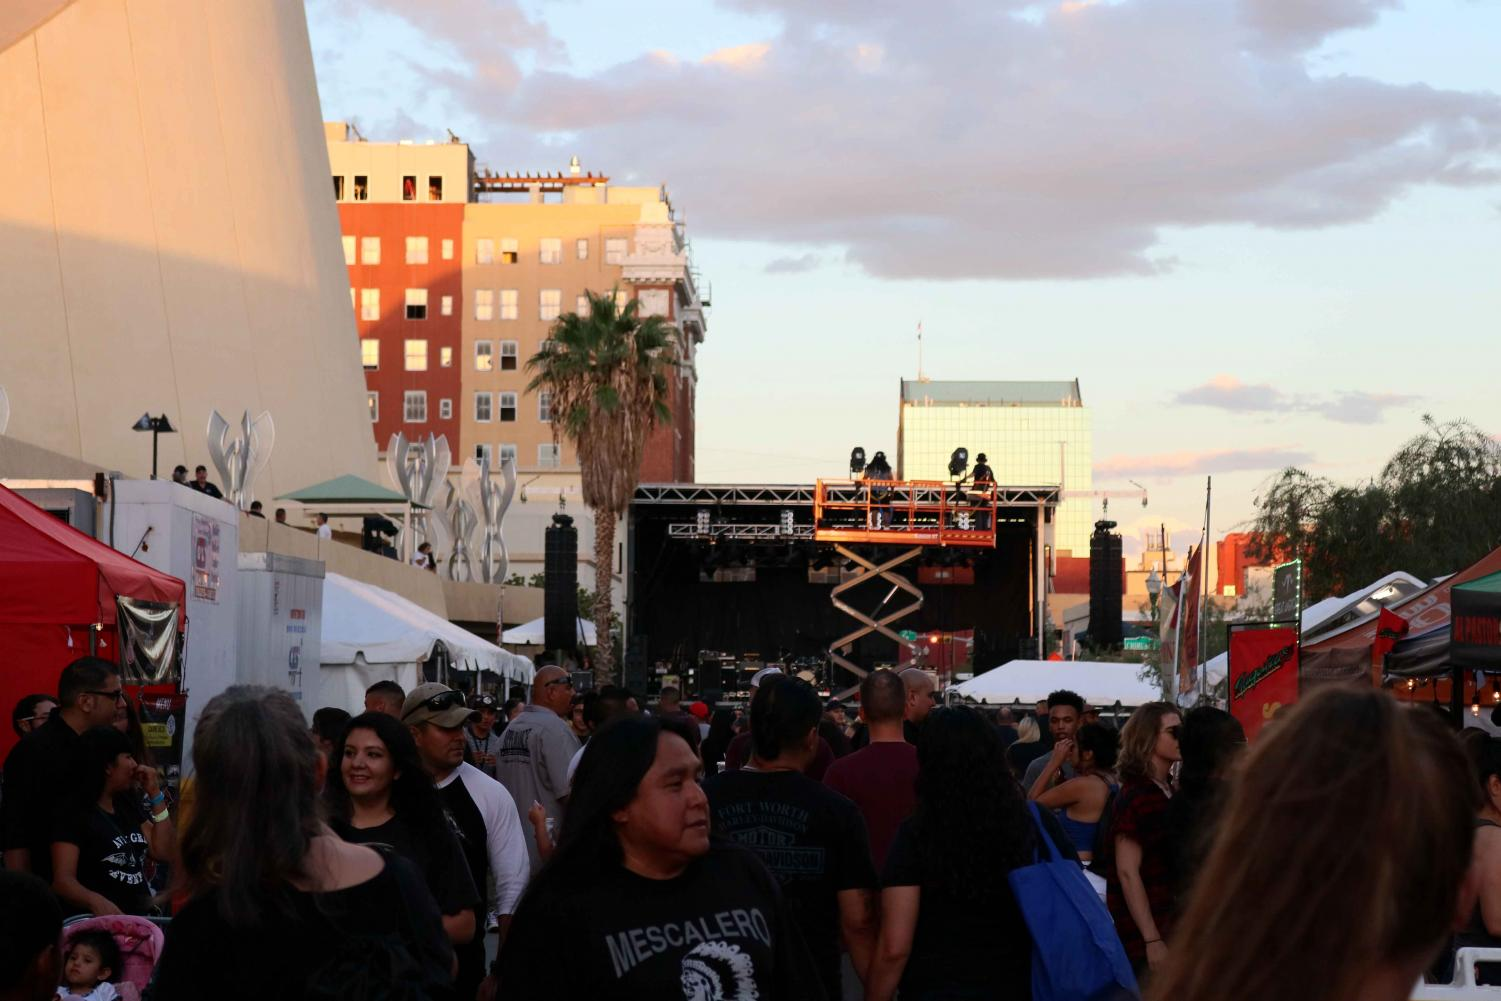 People enjoyed food and drinks from the food trucks at San Antonio street.